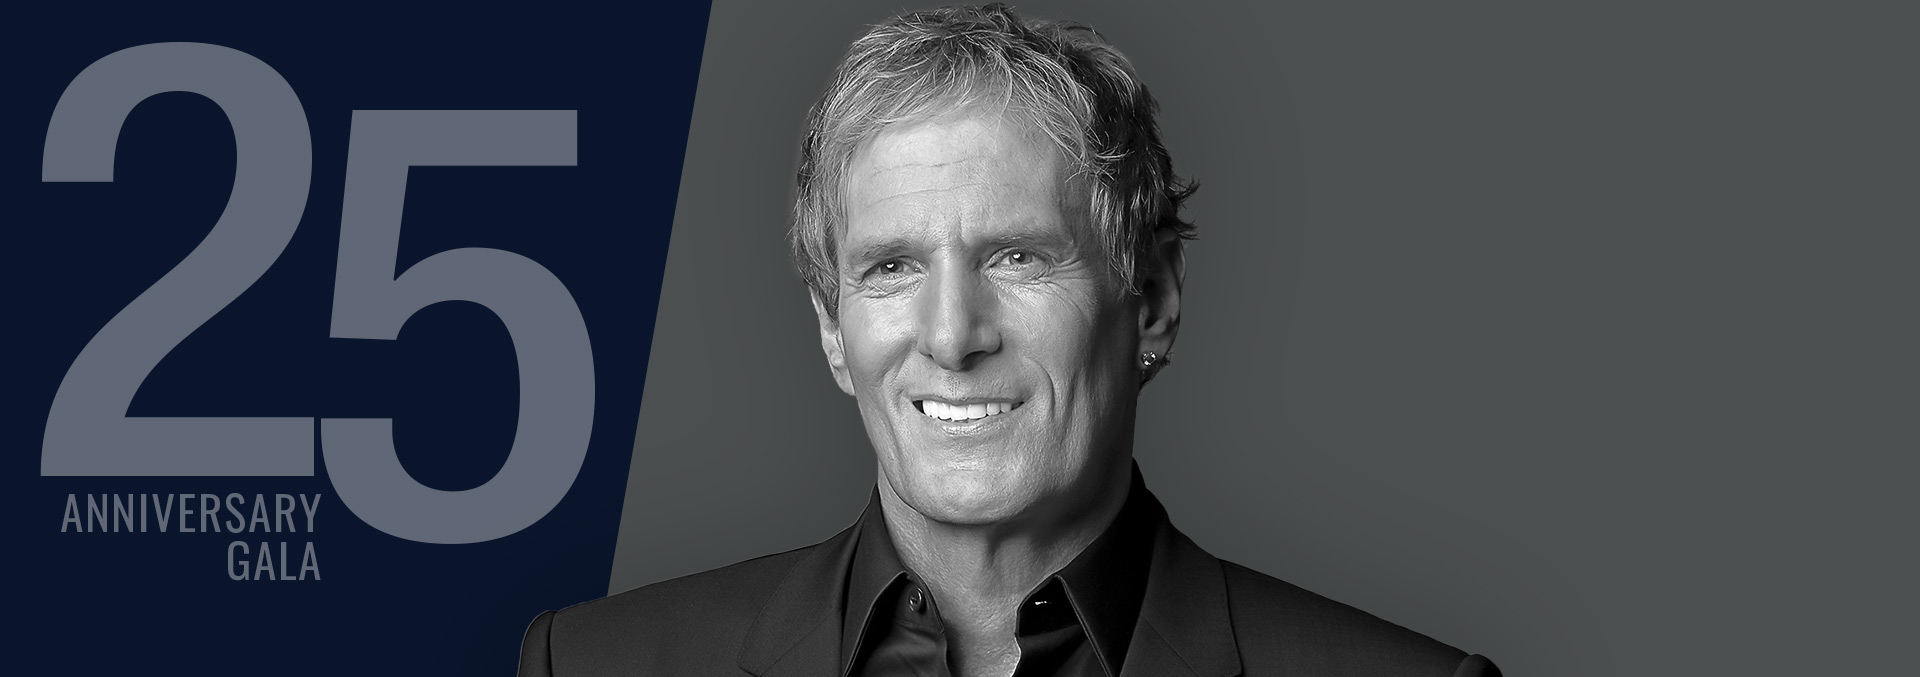 Toronto Gala 2019: An Evening with Michael Bolton